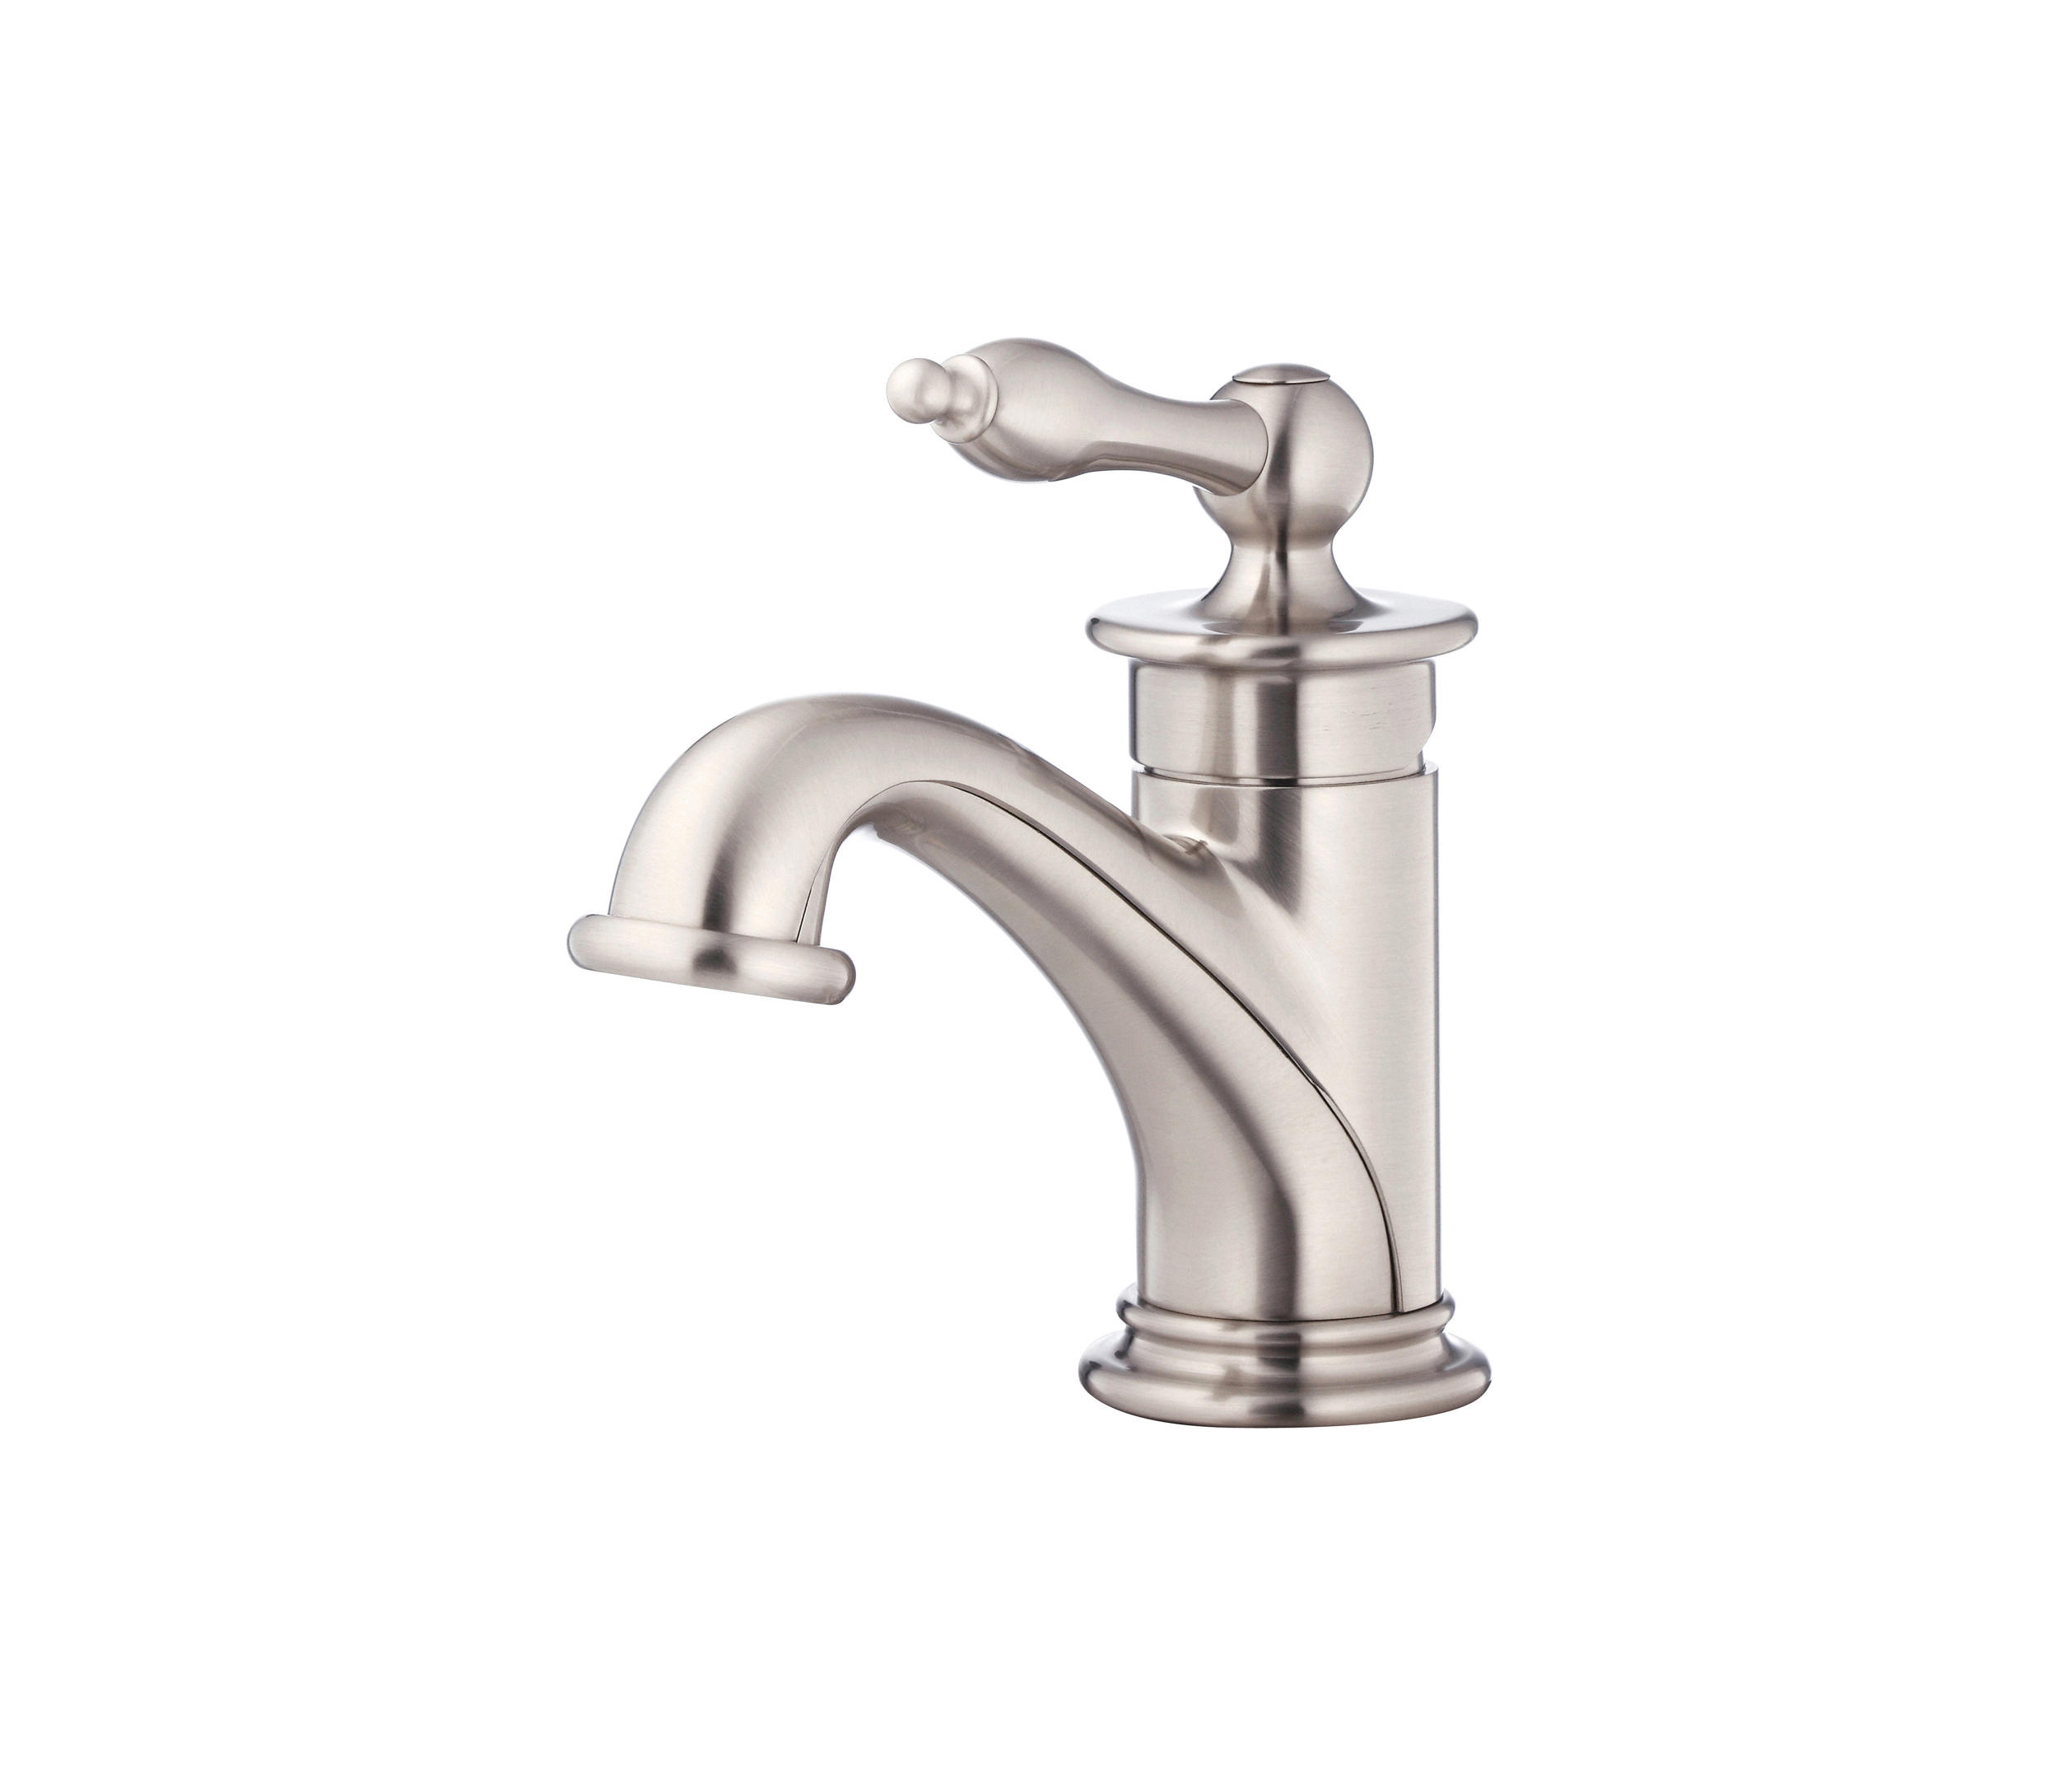 PRINCE™ | SINGLE HANDLE LAVATORY FAUCET, 1.2GPM - Wash-basin taps ...